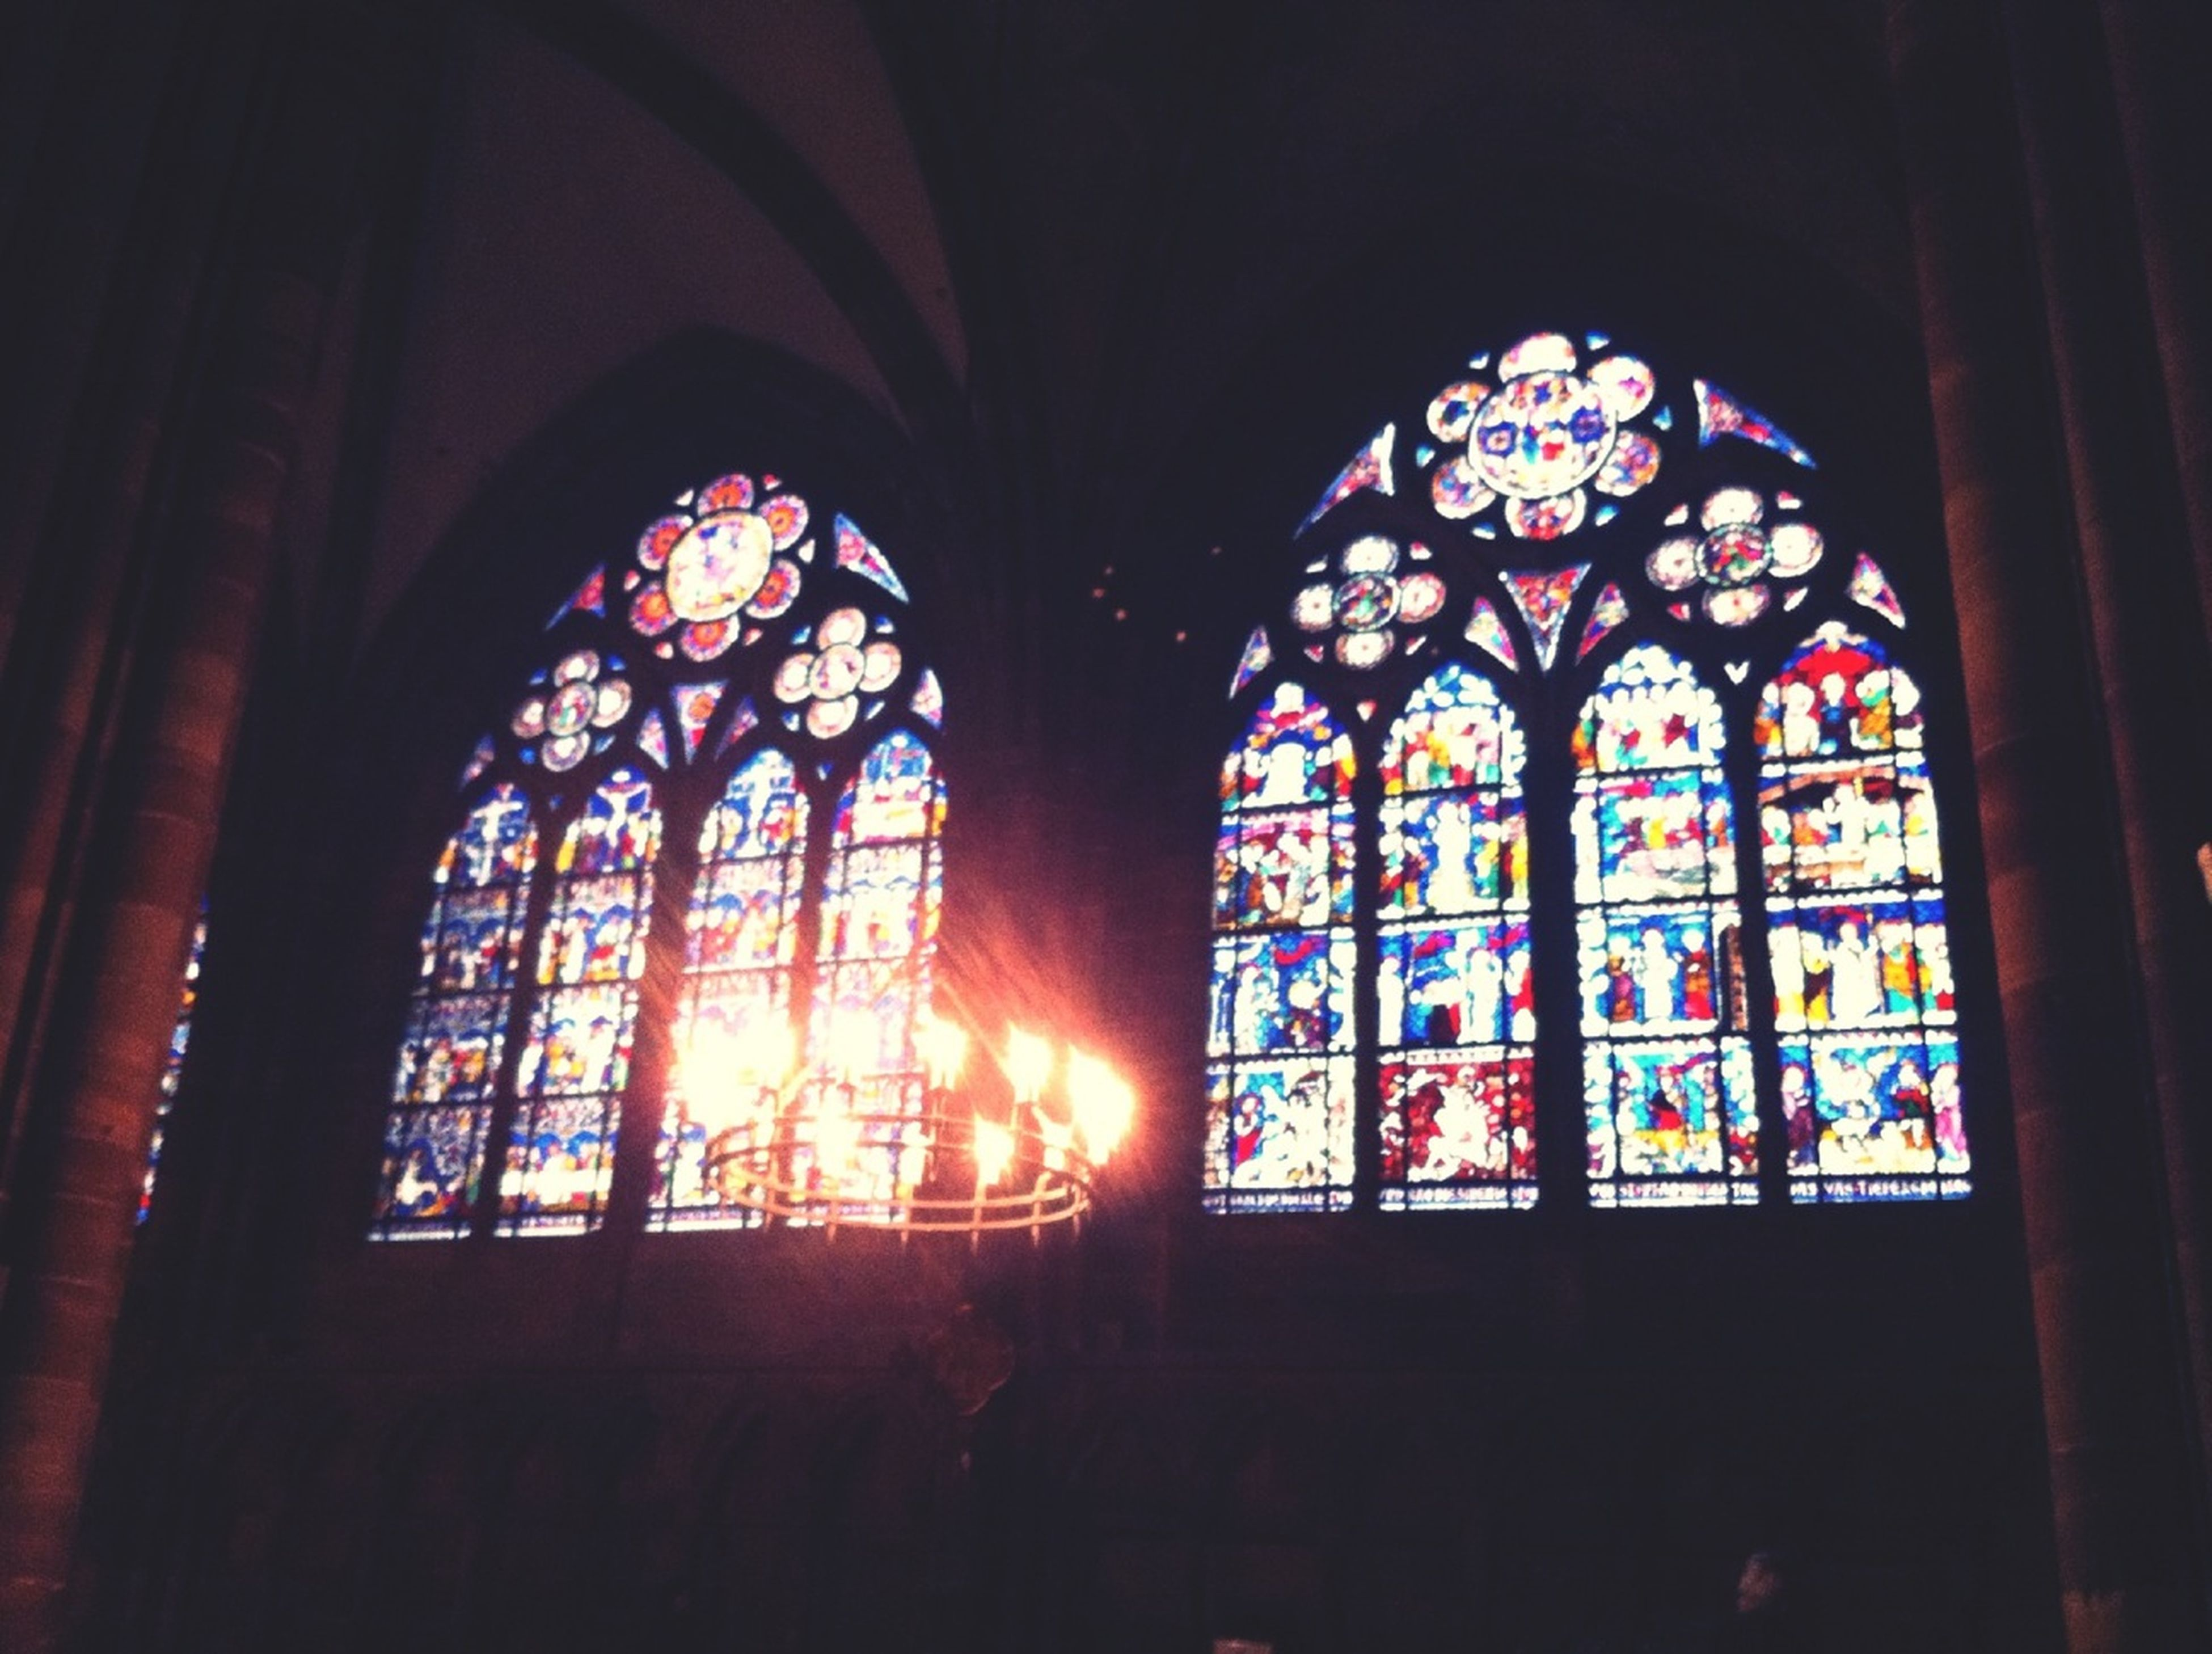 indoors, church, religion, place of worship, stained glass, spirituality, window, architecture, built structure, multi colored, glass - material, design, low angle view, arch, cathedral, pattern, ornate, ceiling